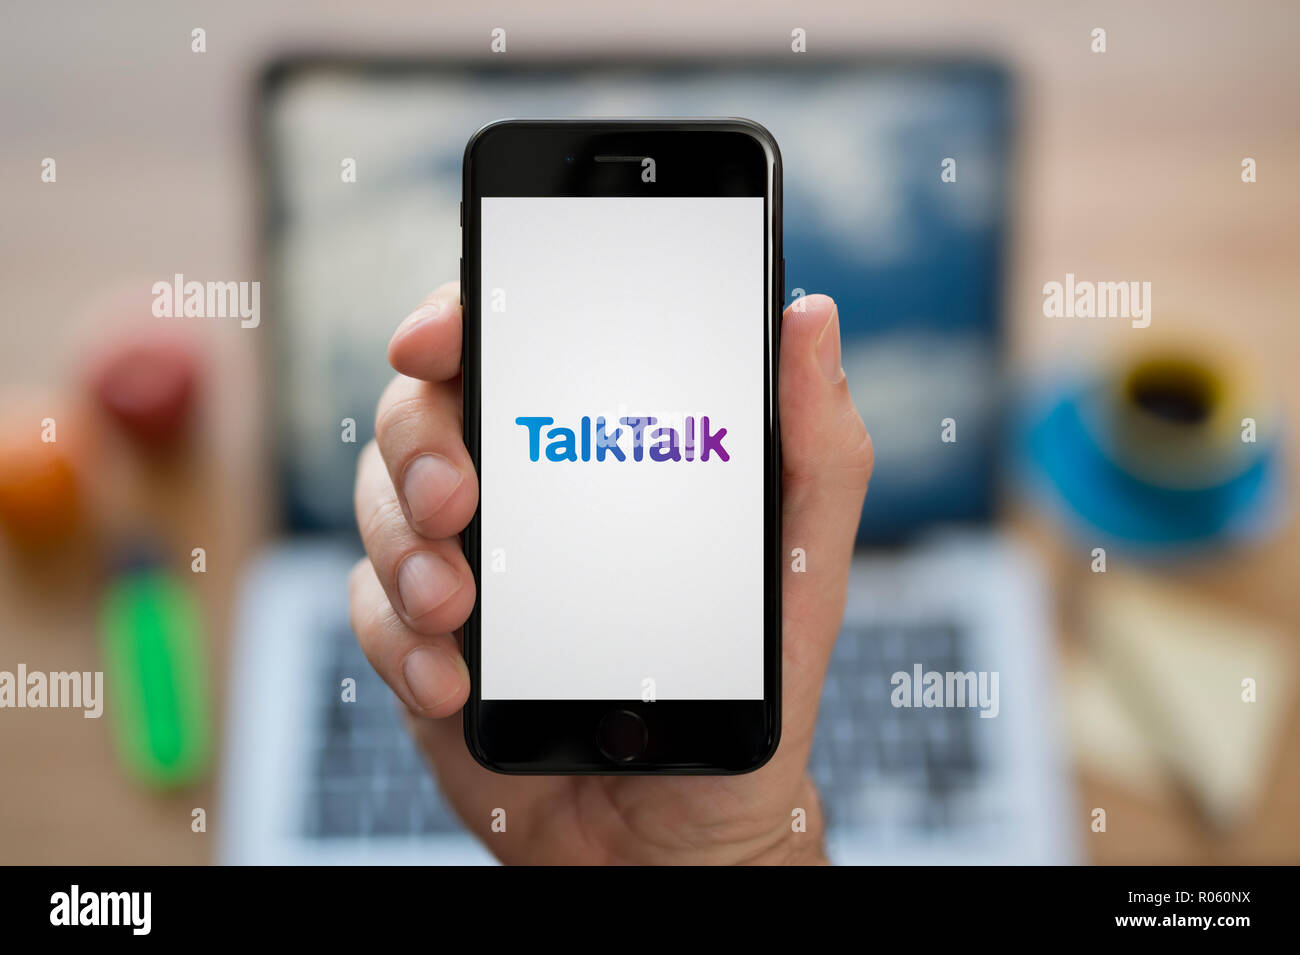 A man looks at his iPhone which displays the TalkTalk logo, while sat at his computer desk (Editorial use only). Stock Photo